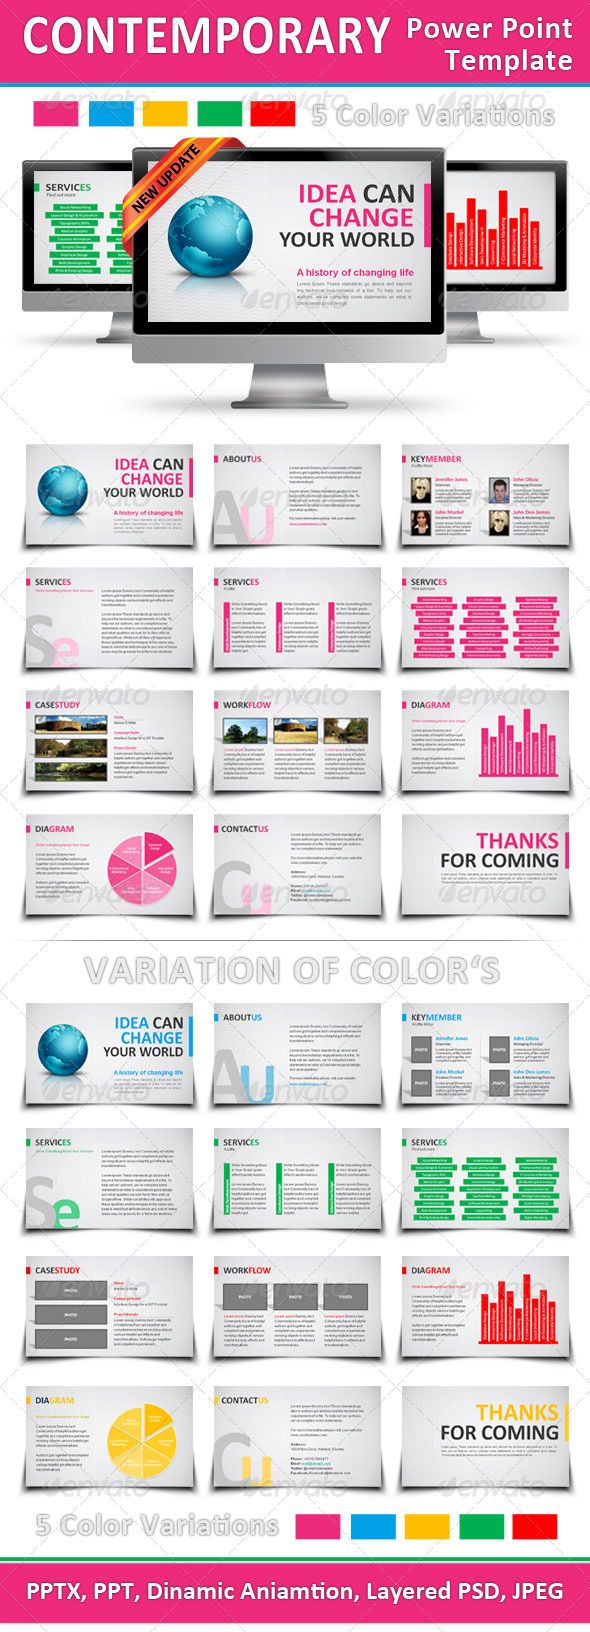 best ideas about power point templates contemporary power point template